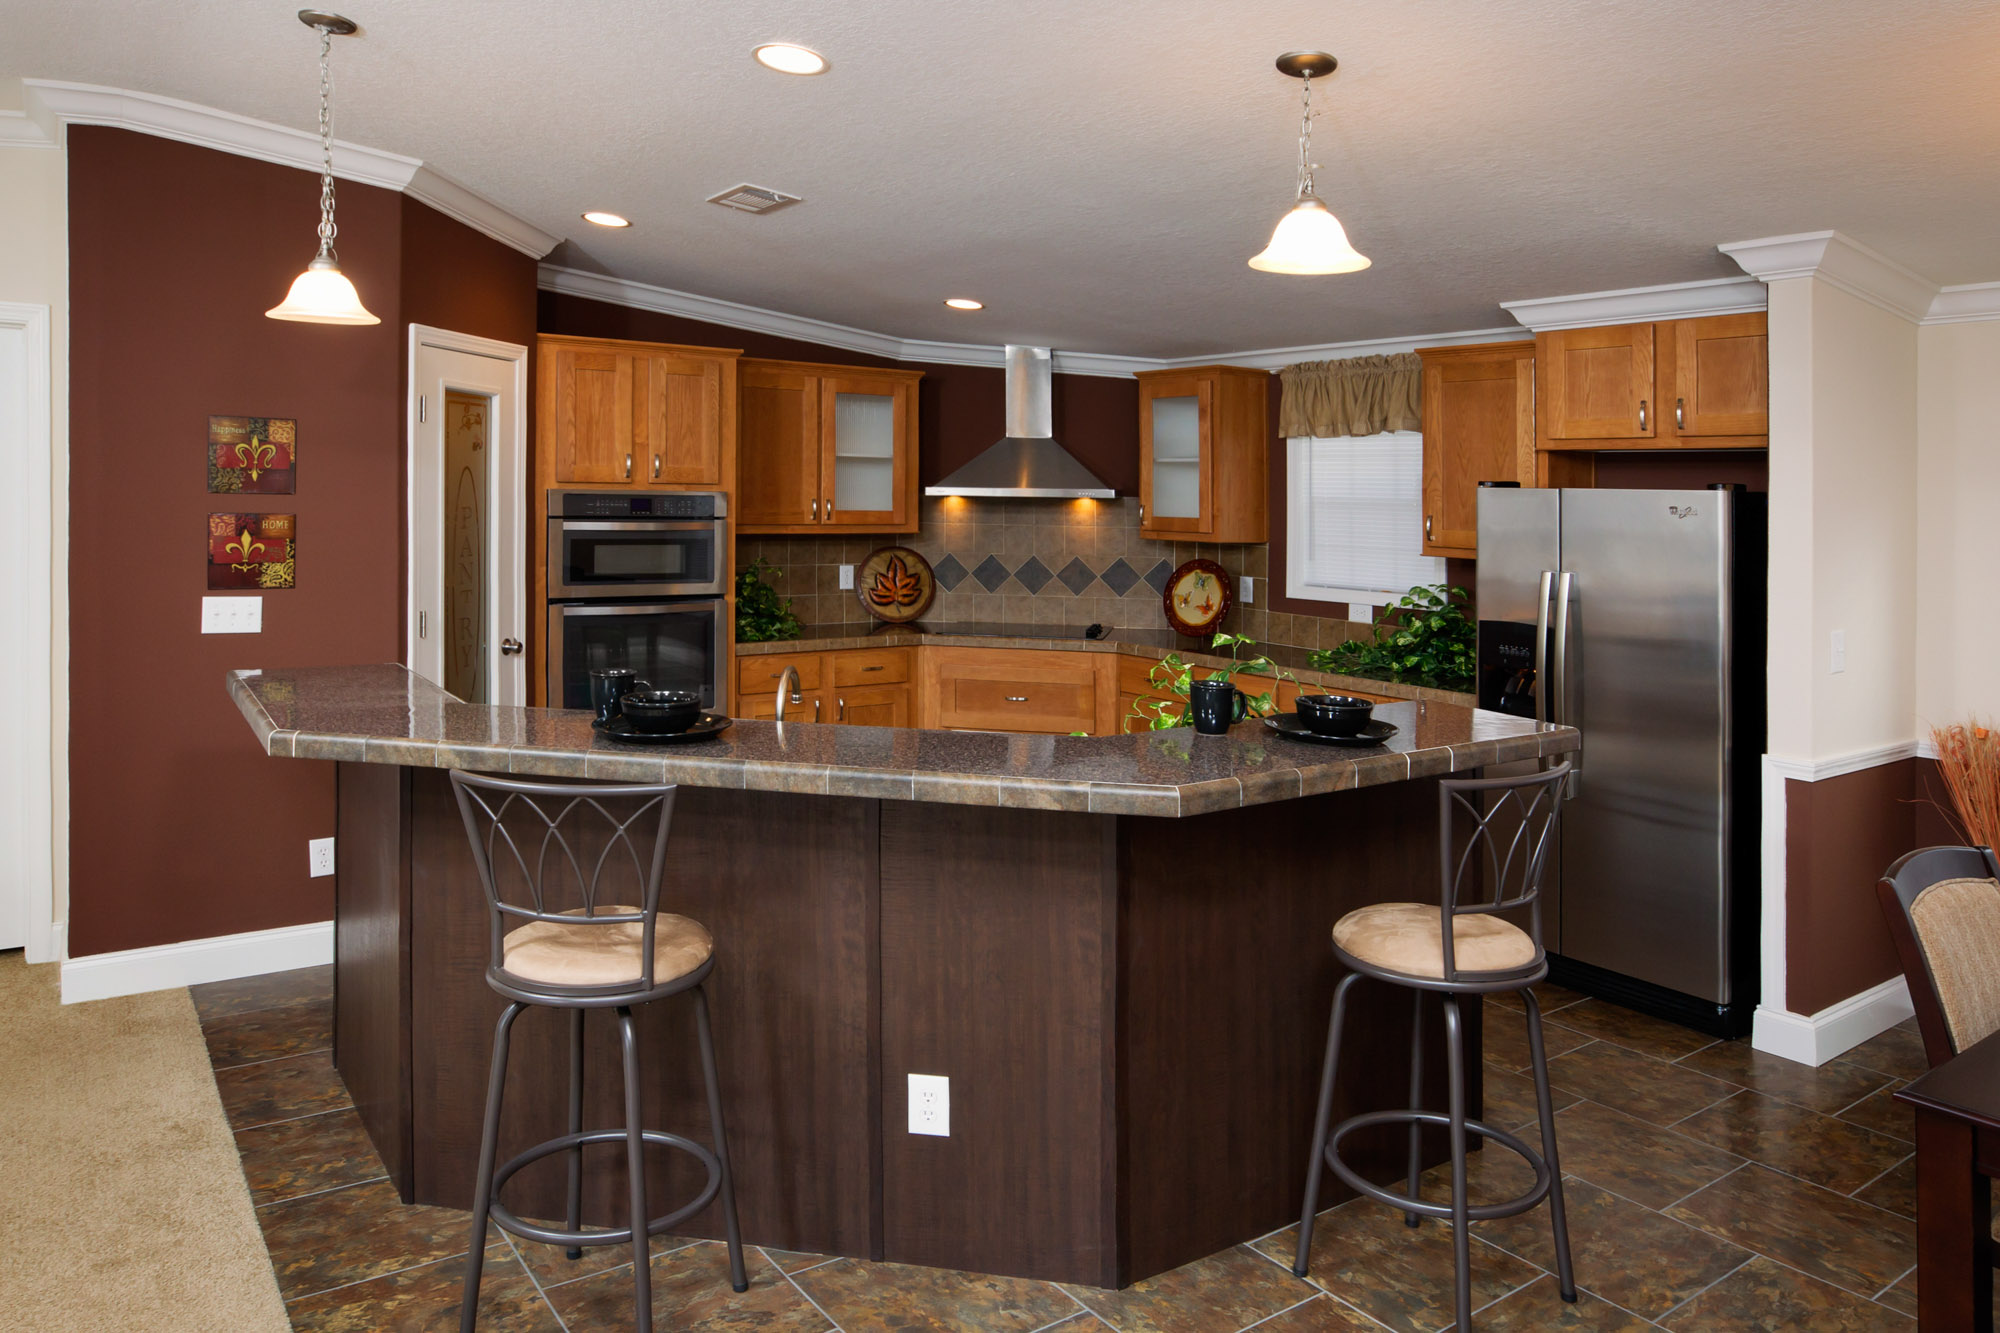 Interior Mobile Home | Mobile Homes All The Qualities Of Stick Built Homes At A Fraction